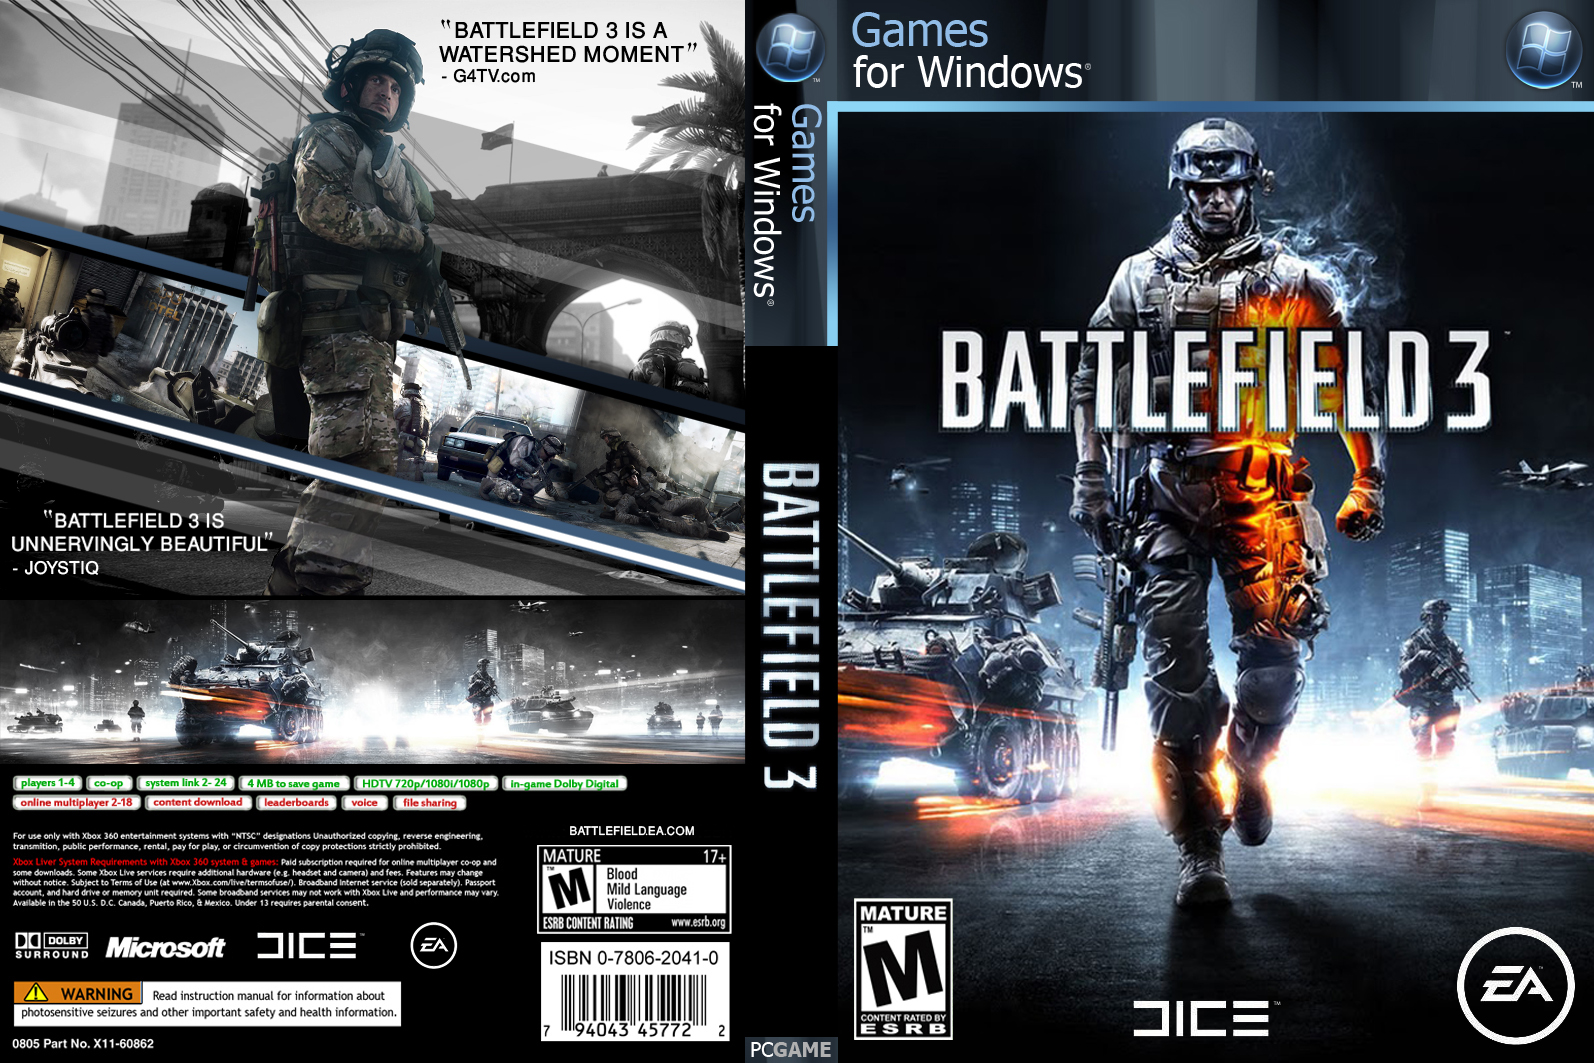 battlefield 3 game cover rh freegamecover blogspot com Battlefield Bad Company 2 PS3 Battlefield Bad Company 2 PS3